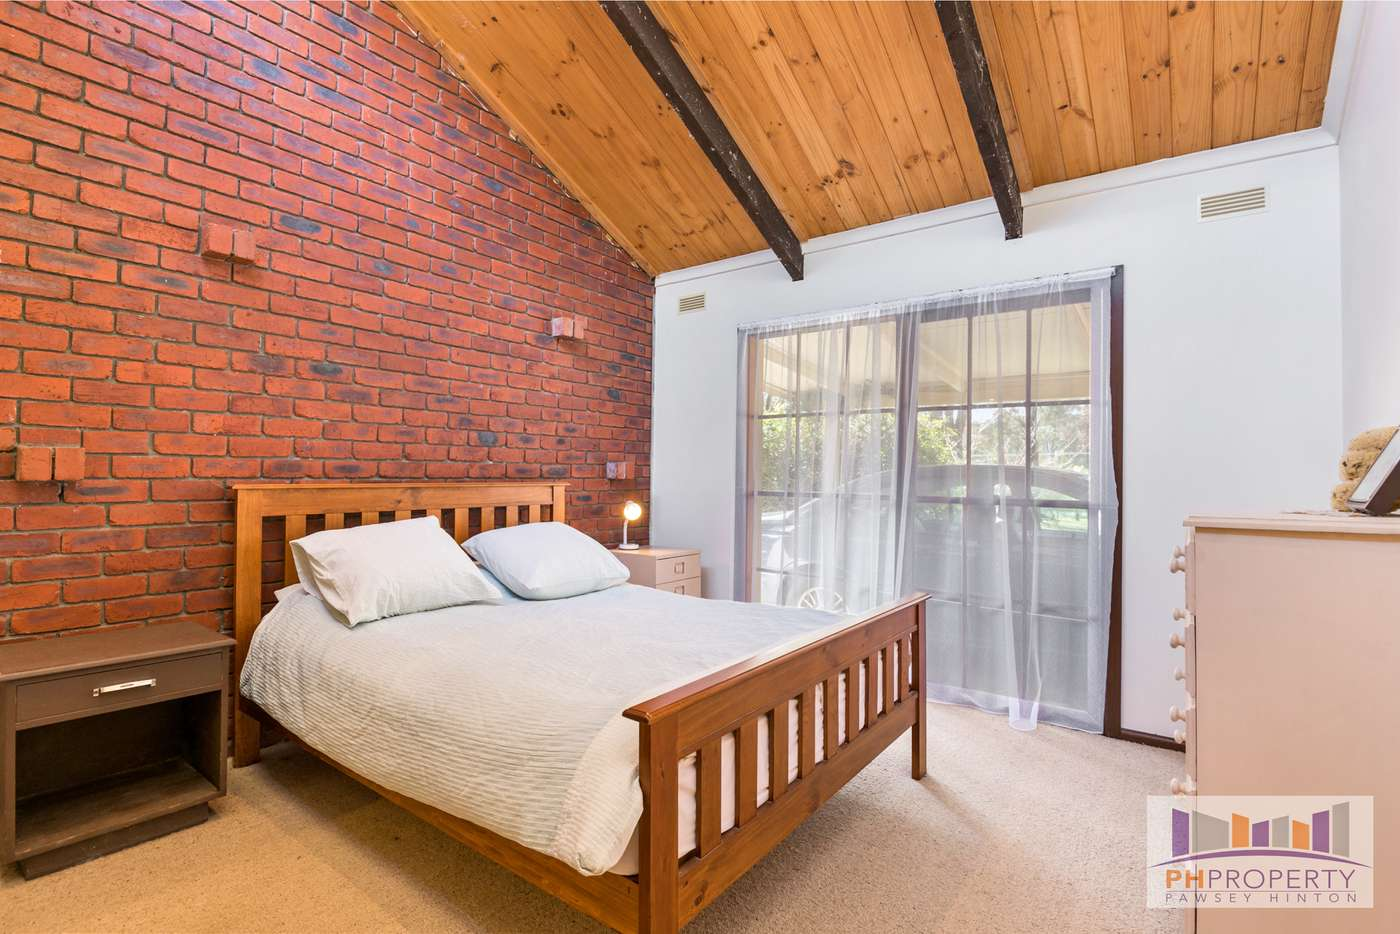 Fifth view of Homely house listing, 118 Tannery Lane, Mandurang VIC 3551